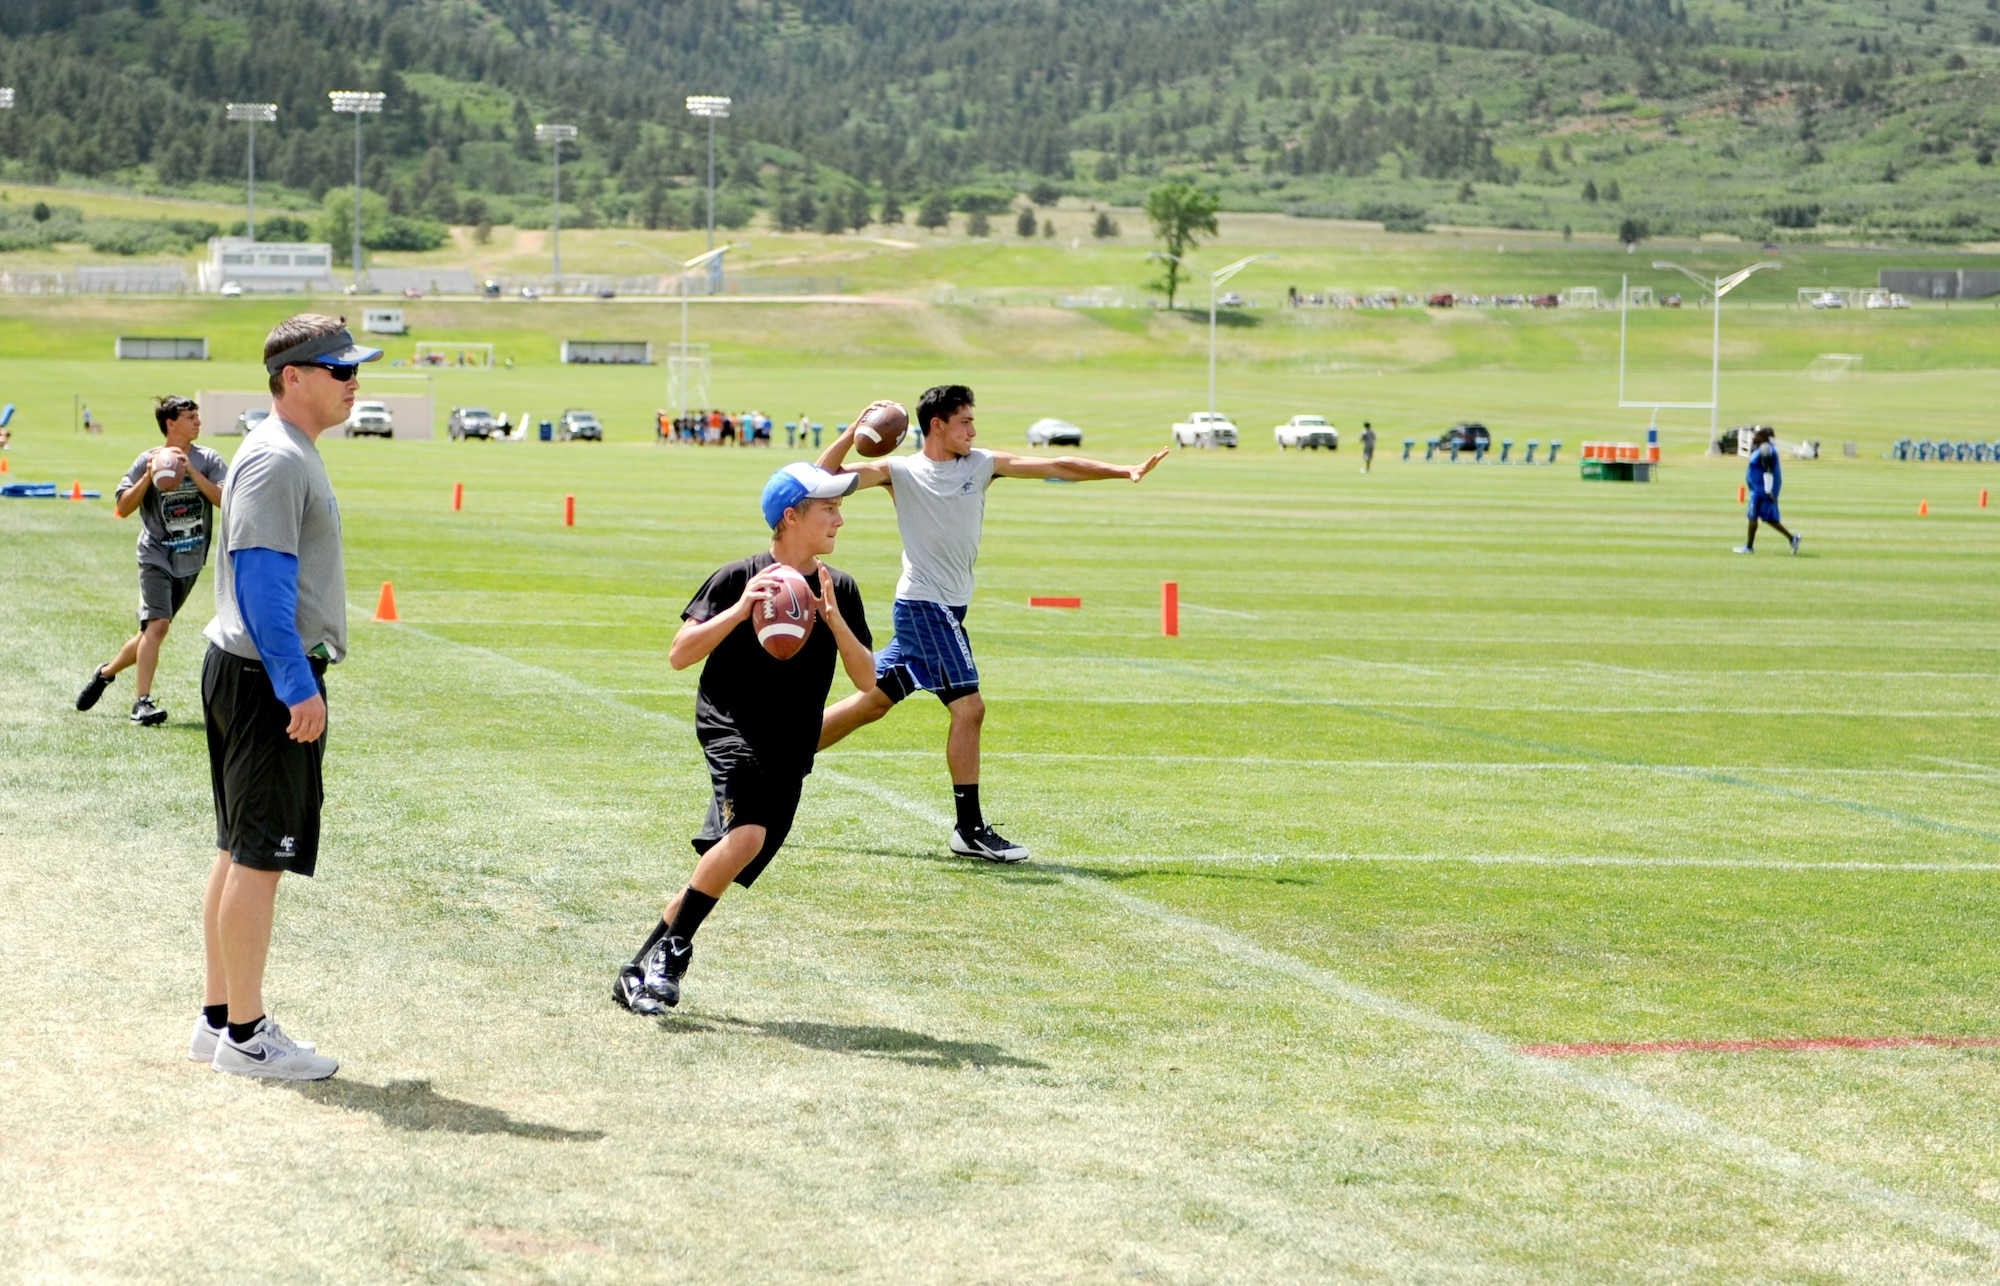 Youth sharpen their football skills during a youth football camp. Air Force Youth Programs is offering a variety of summer camps for 2019 to include more than 10 sports camps. (U.S. Air Force photo)